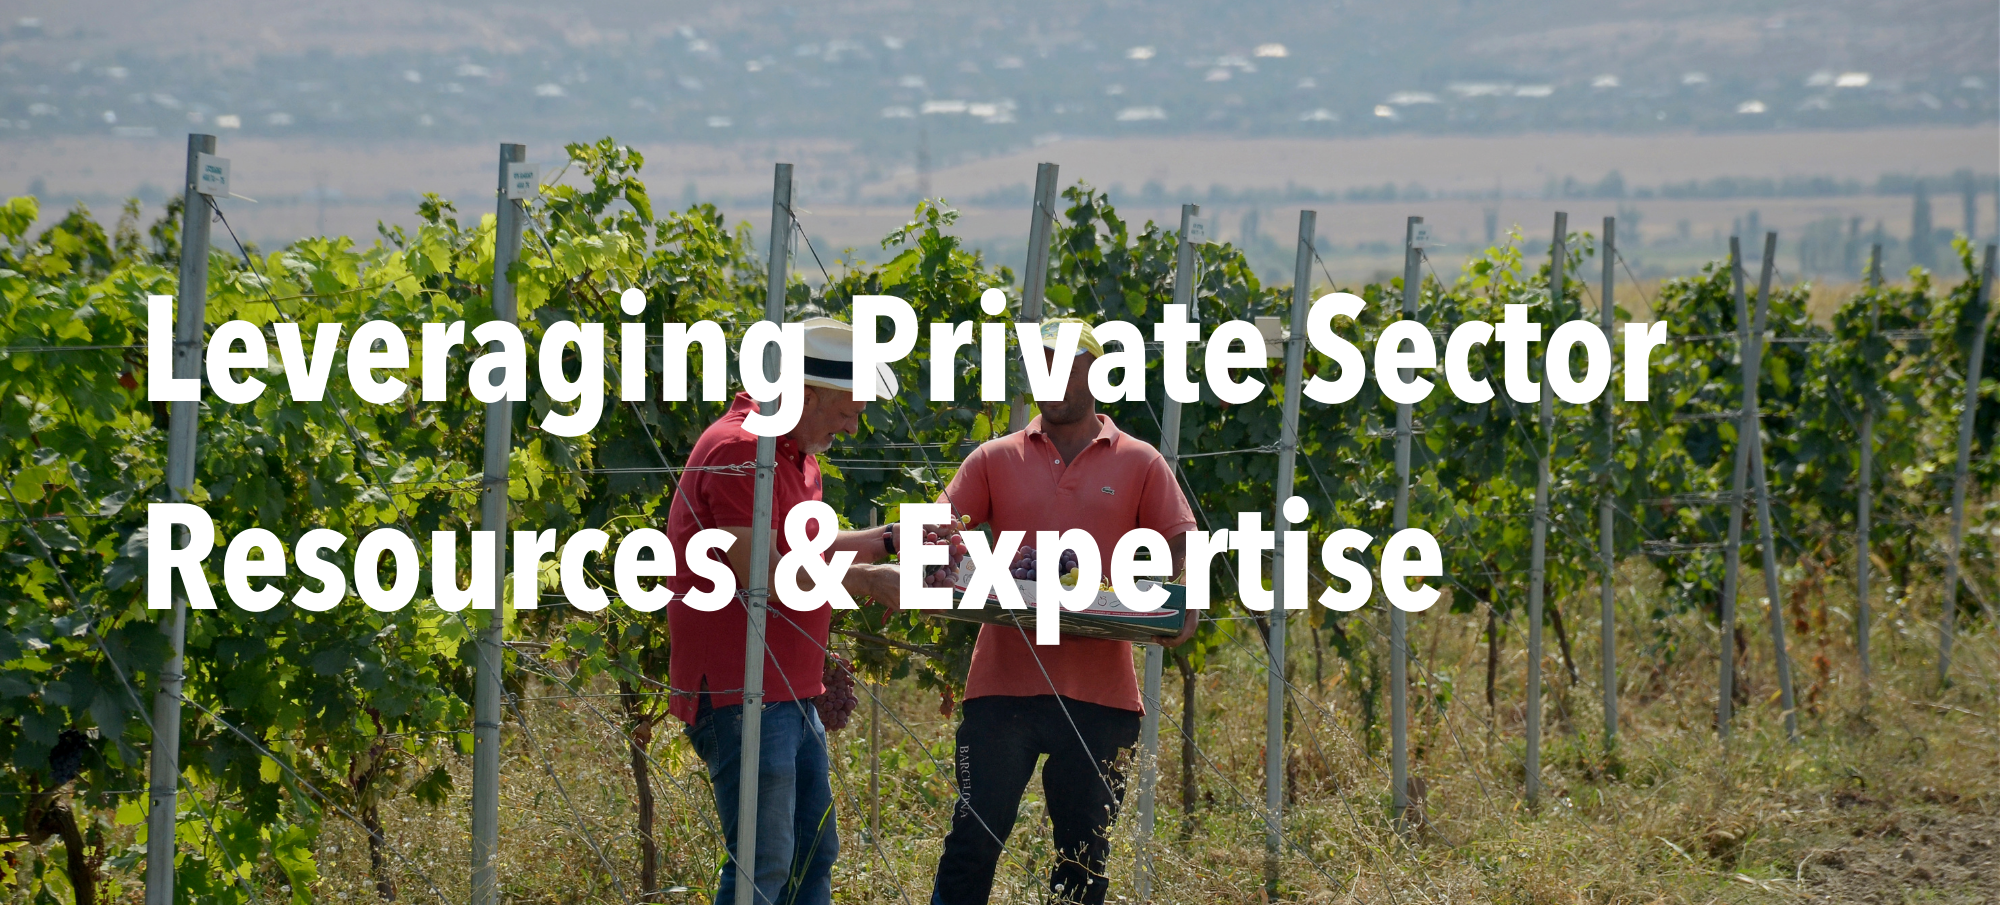 """Two men in a vineyard with the header text """"Leveraging Private Sector Resources & Expertise"""""""